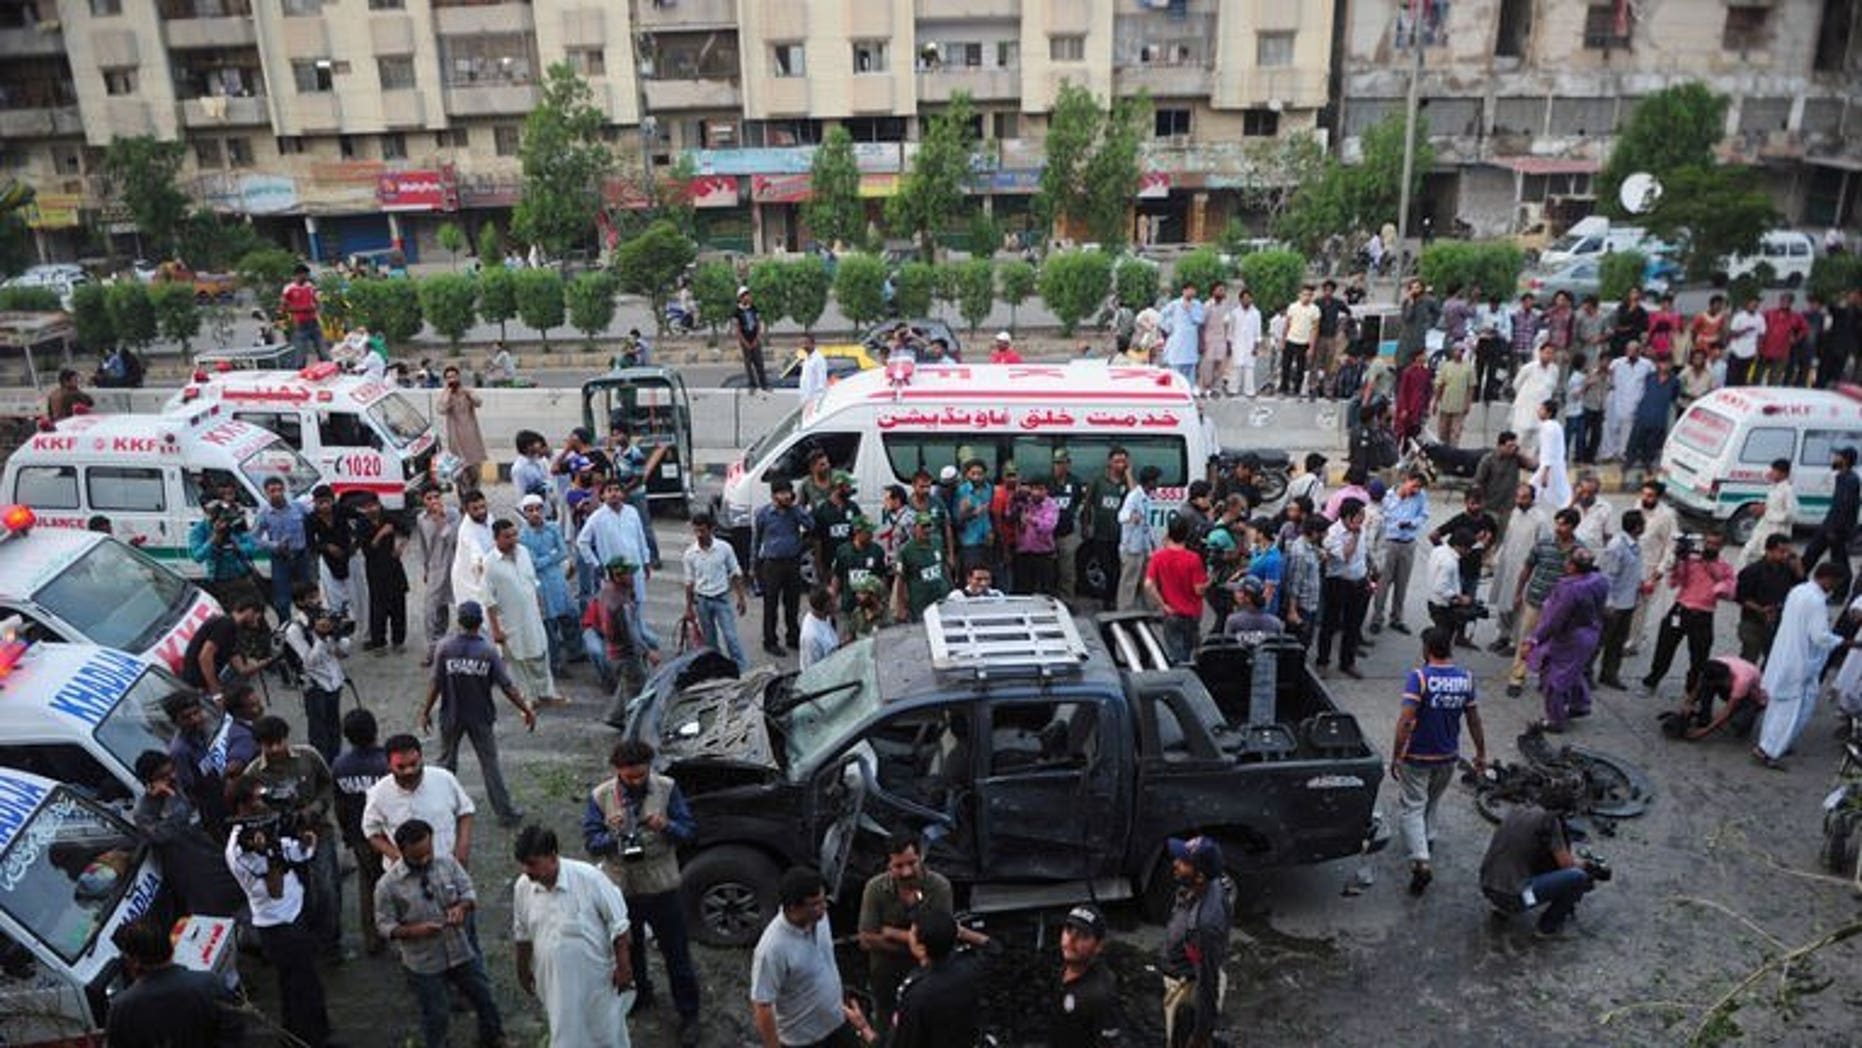 Pakistani security personnel collect evidence at the site of a bomb attack in Karachi on July 20, 2013. Two separate bomb explosions late Saturday killed four people and wounded seven others in Pakistan's port city Karachi, police said.